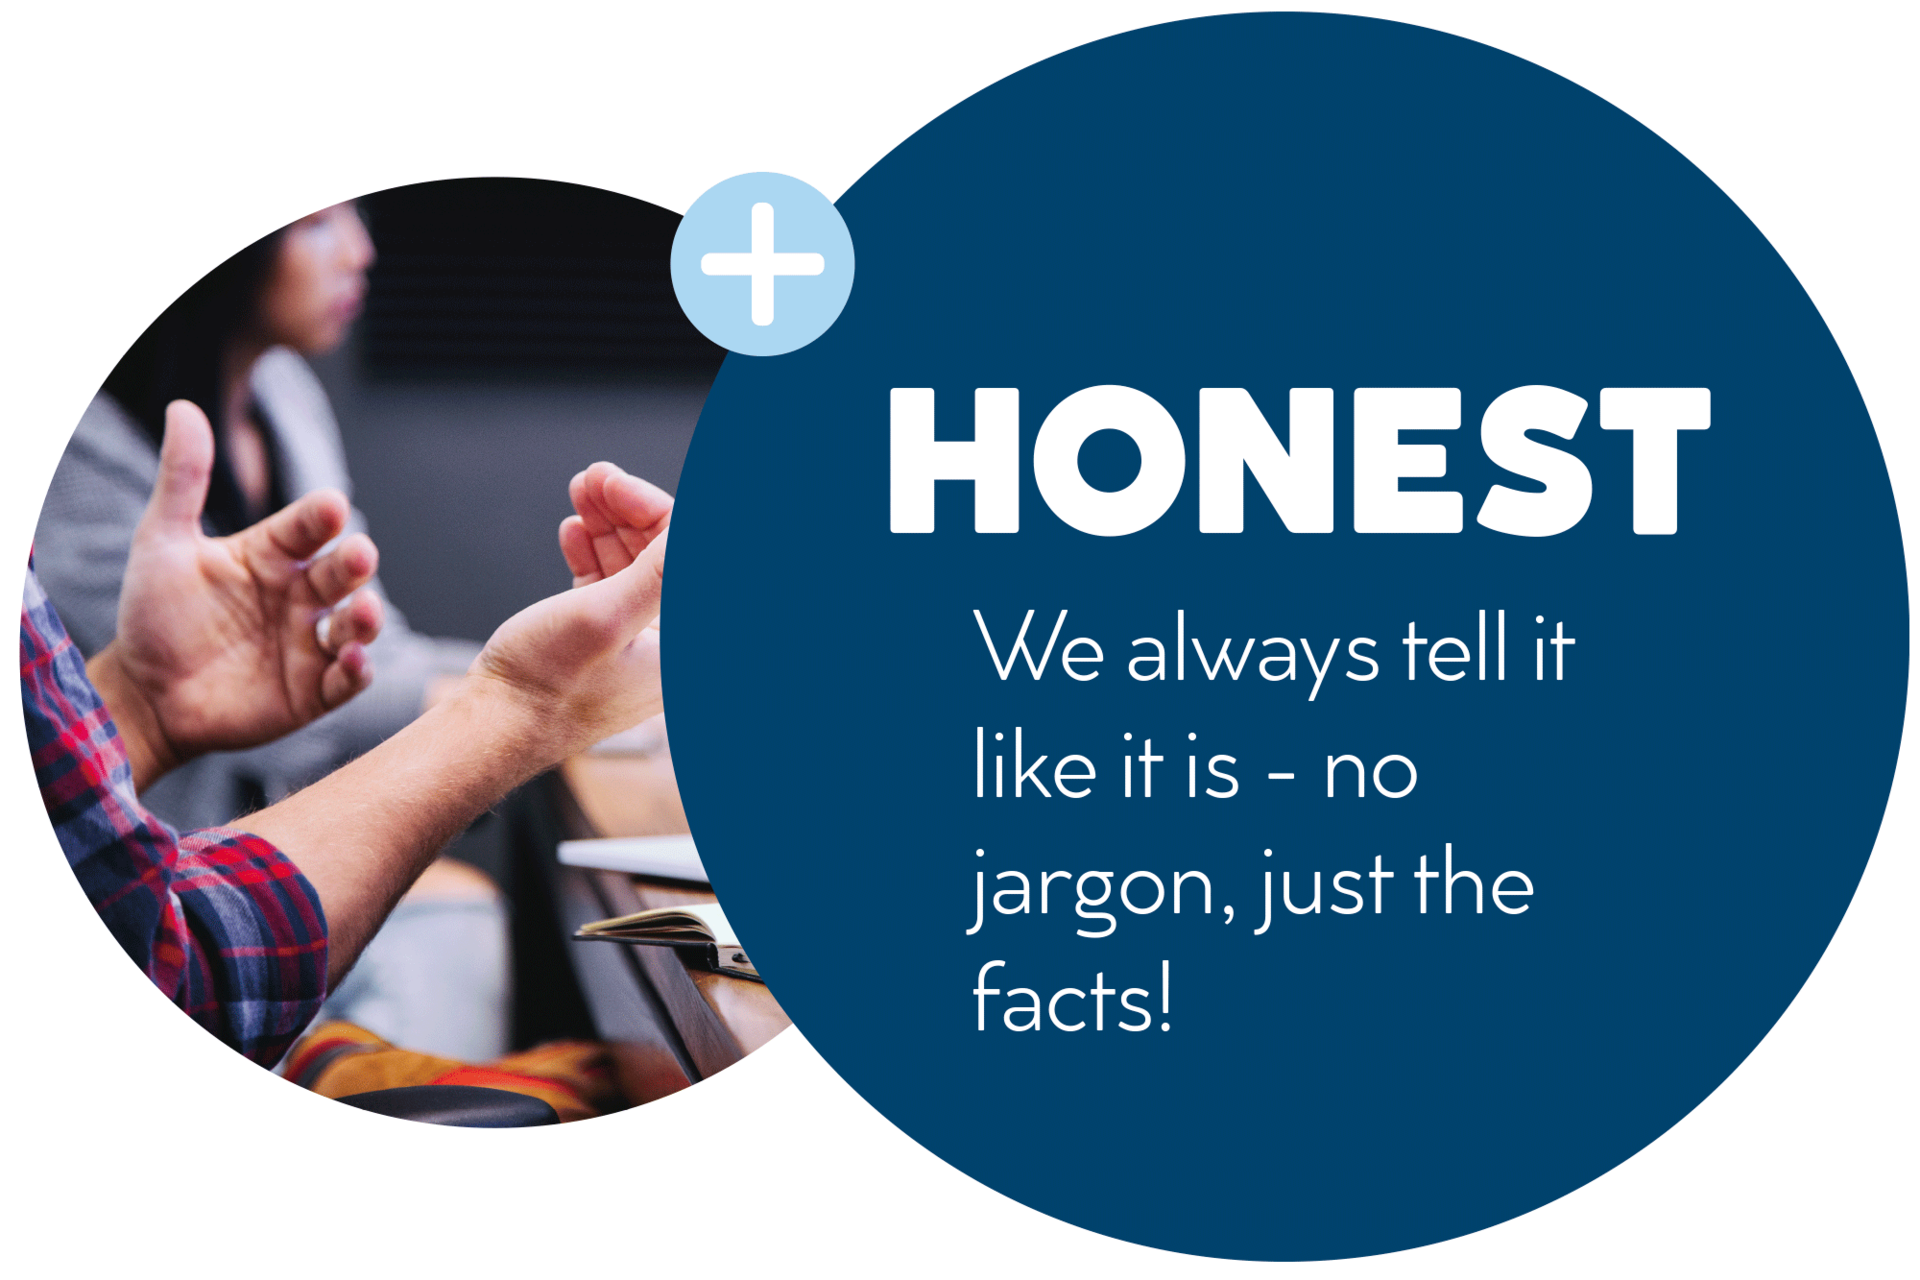 Honest - We always tell it like it is - no jargon, just the facts!